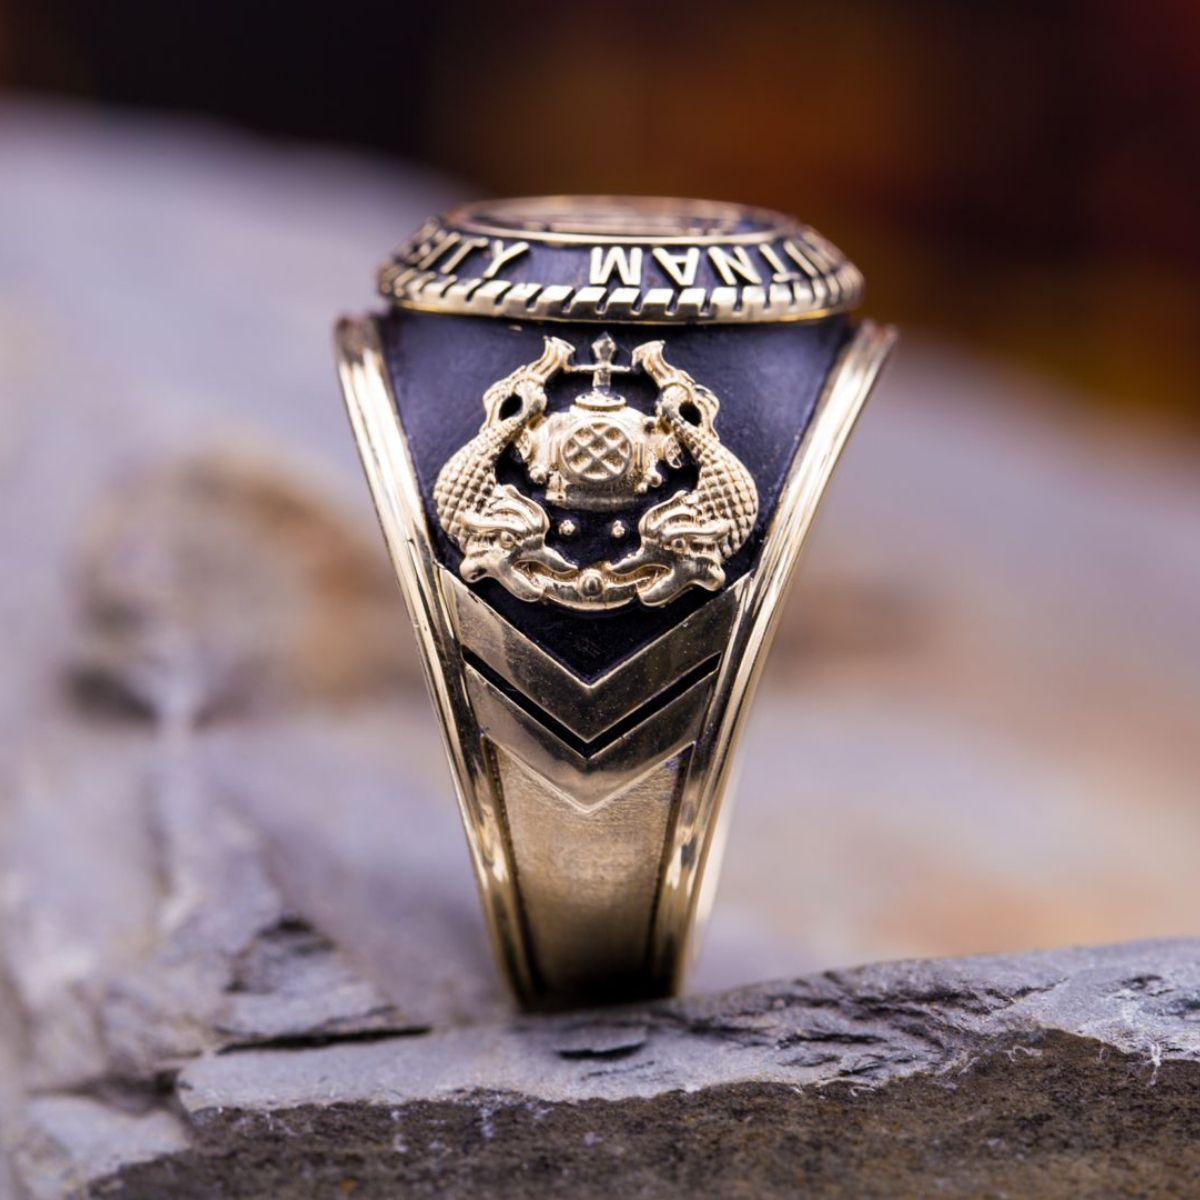 Us Army Class Rings: Design Your Own Military Signet